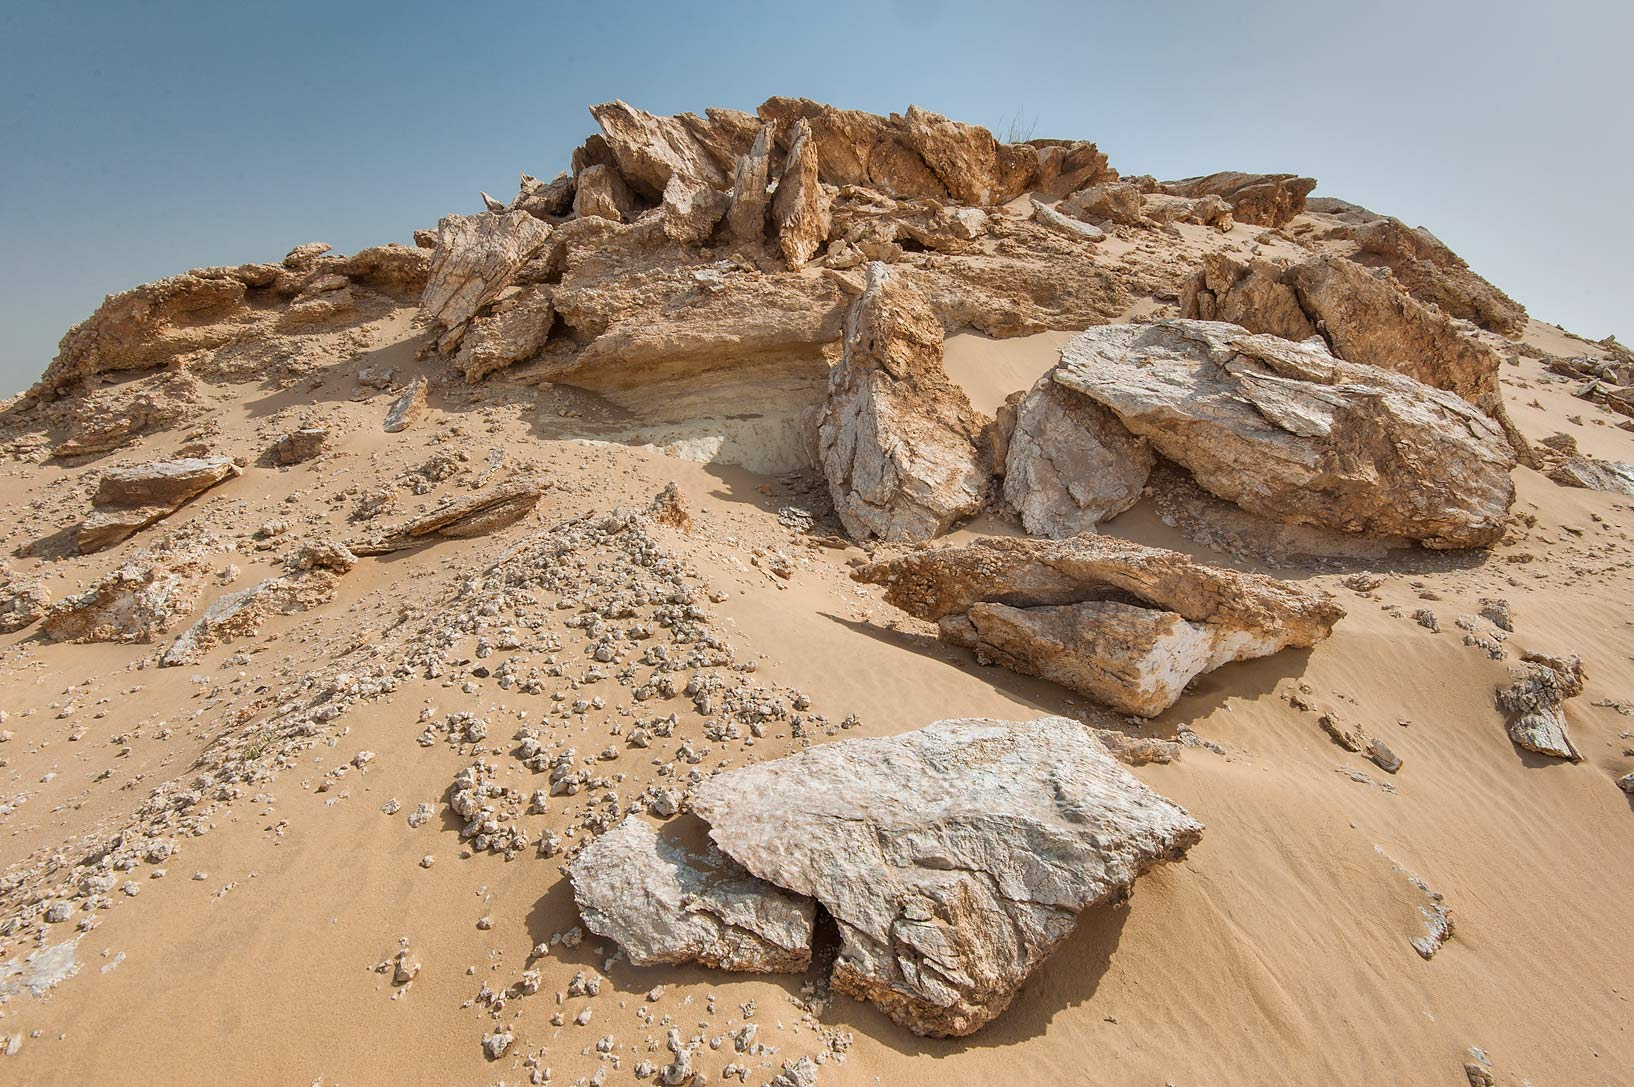 Weathered gypsum slabs (selenite) in area of...an Nakhsh) in south-western Qatar